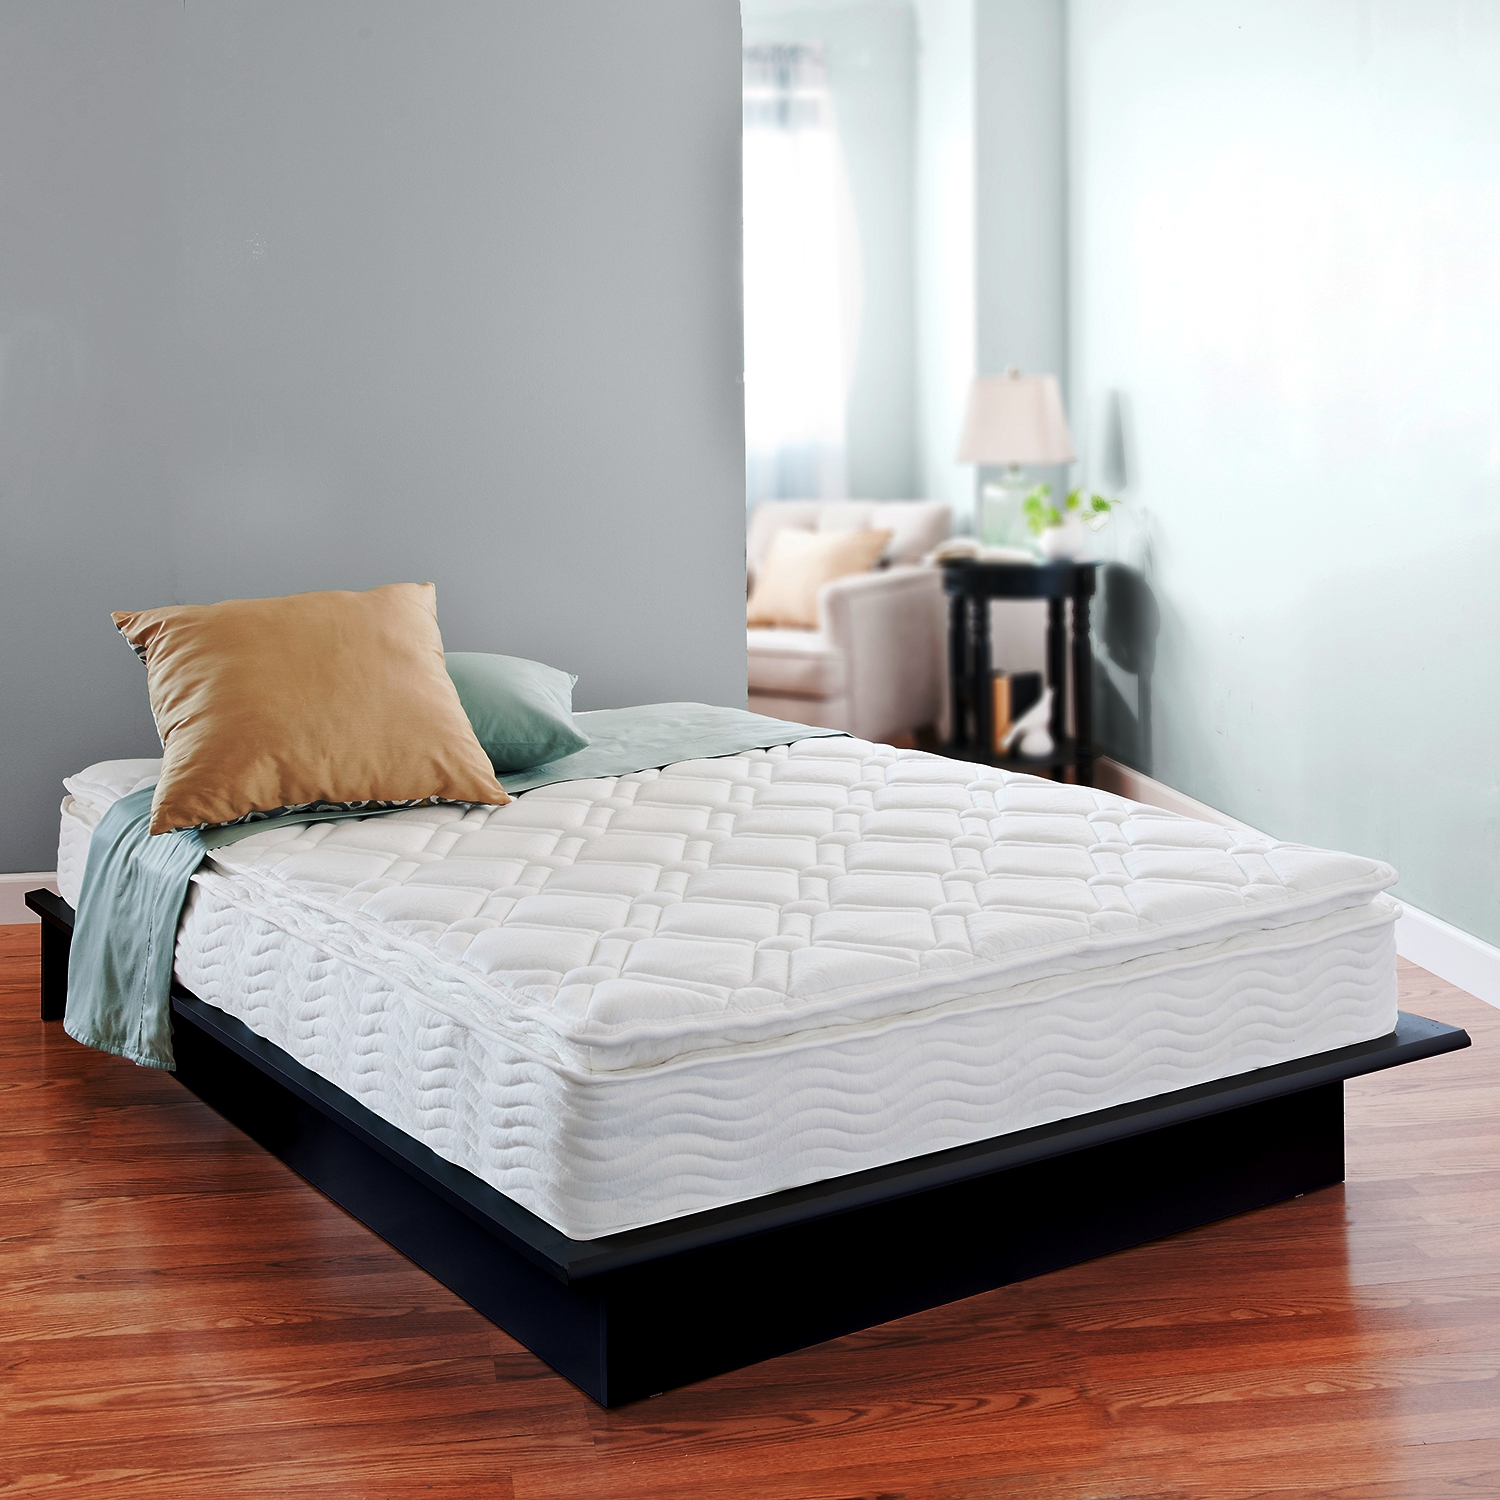 Night Therapy 10 Pillow Top Spring Mattress Twin - Home Mattresses & Accessories